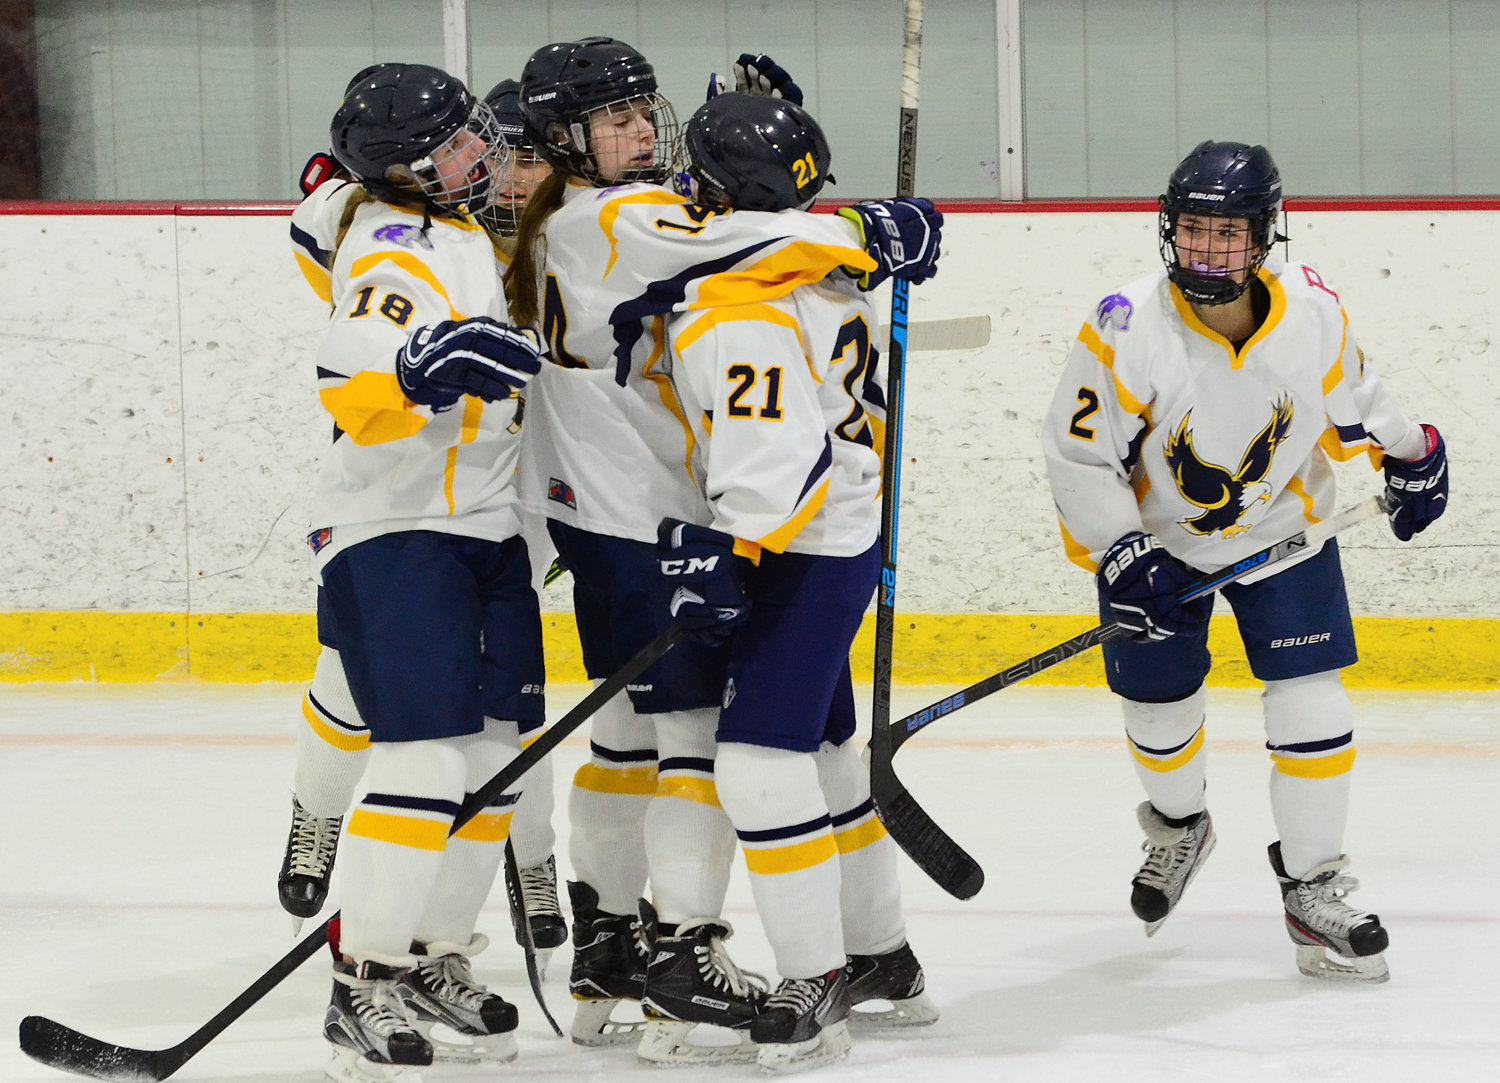 lla Hanley (left) and Peyton Whittet and other teammates swarm teammate Sarah Yee after she scored her second goal in the second period with (Maeve Harrington (right).